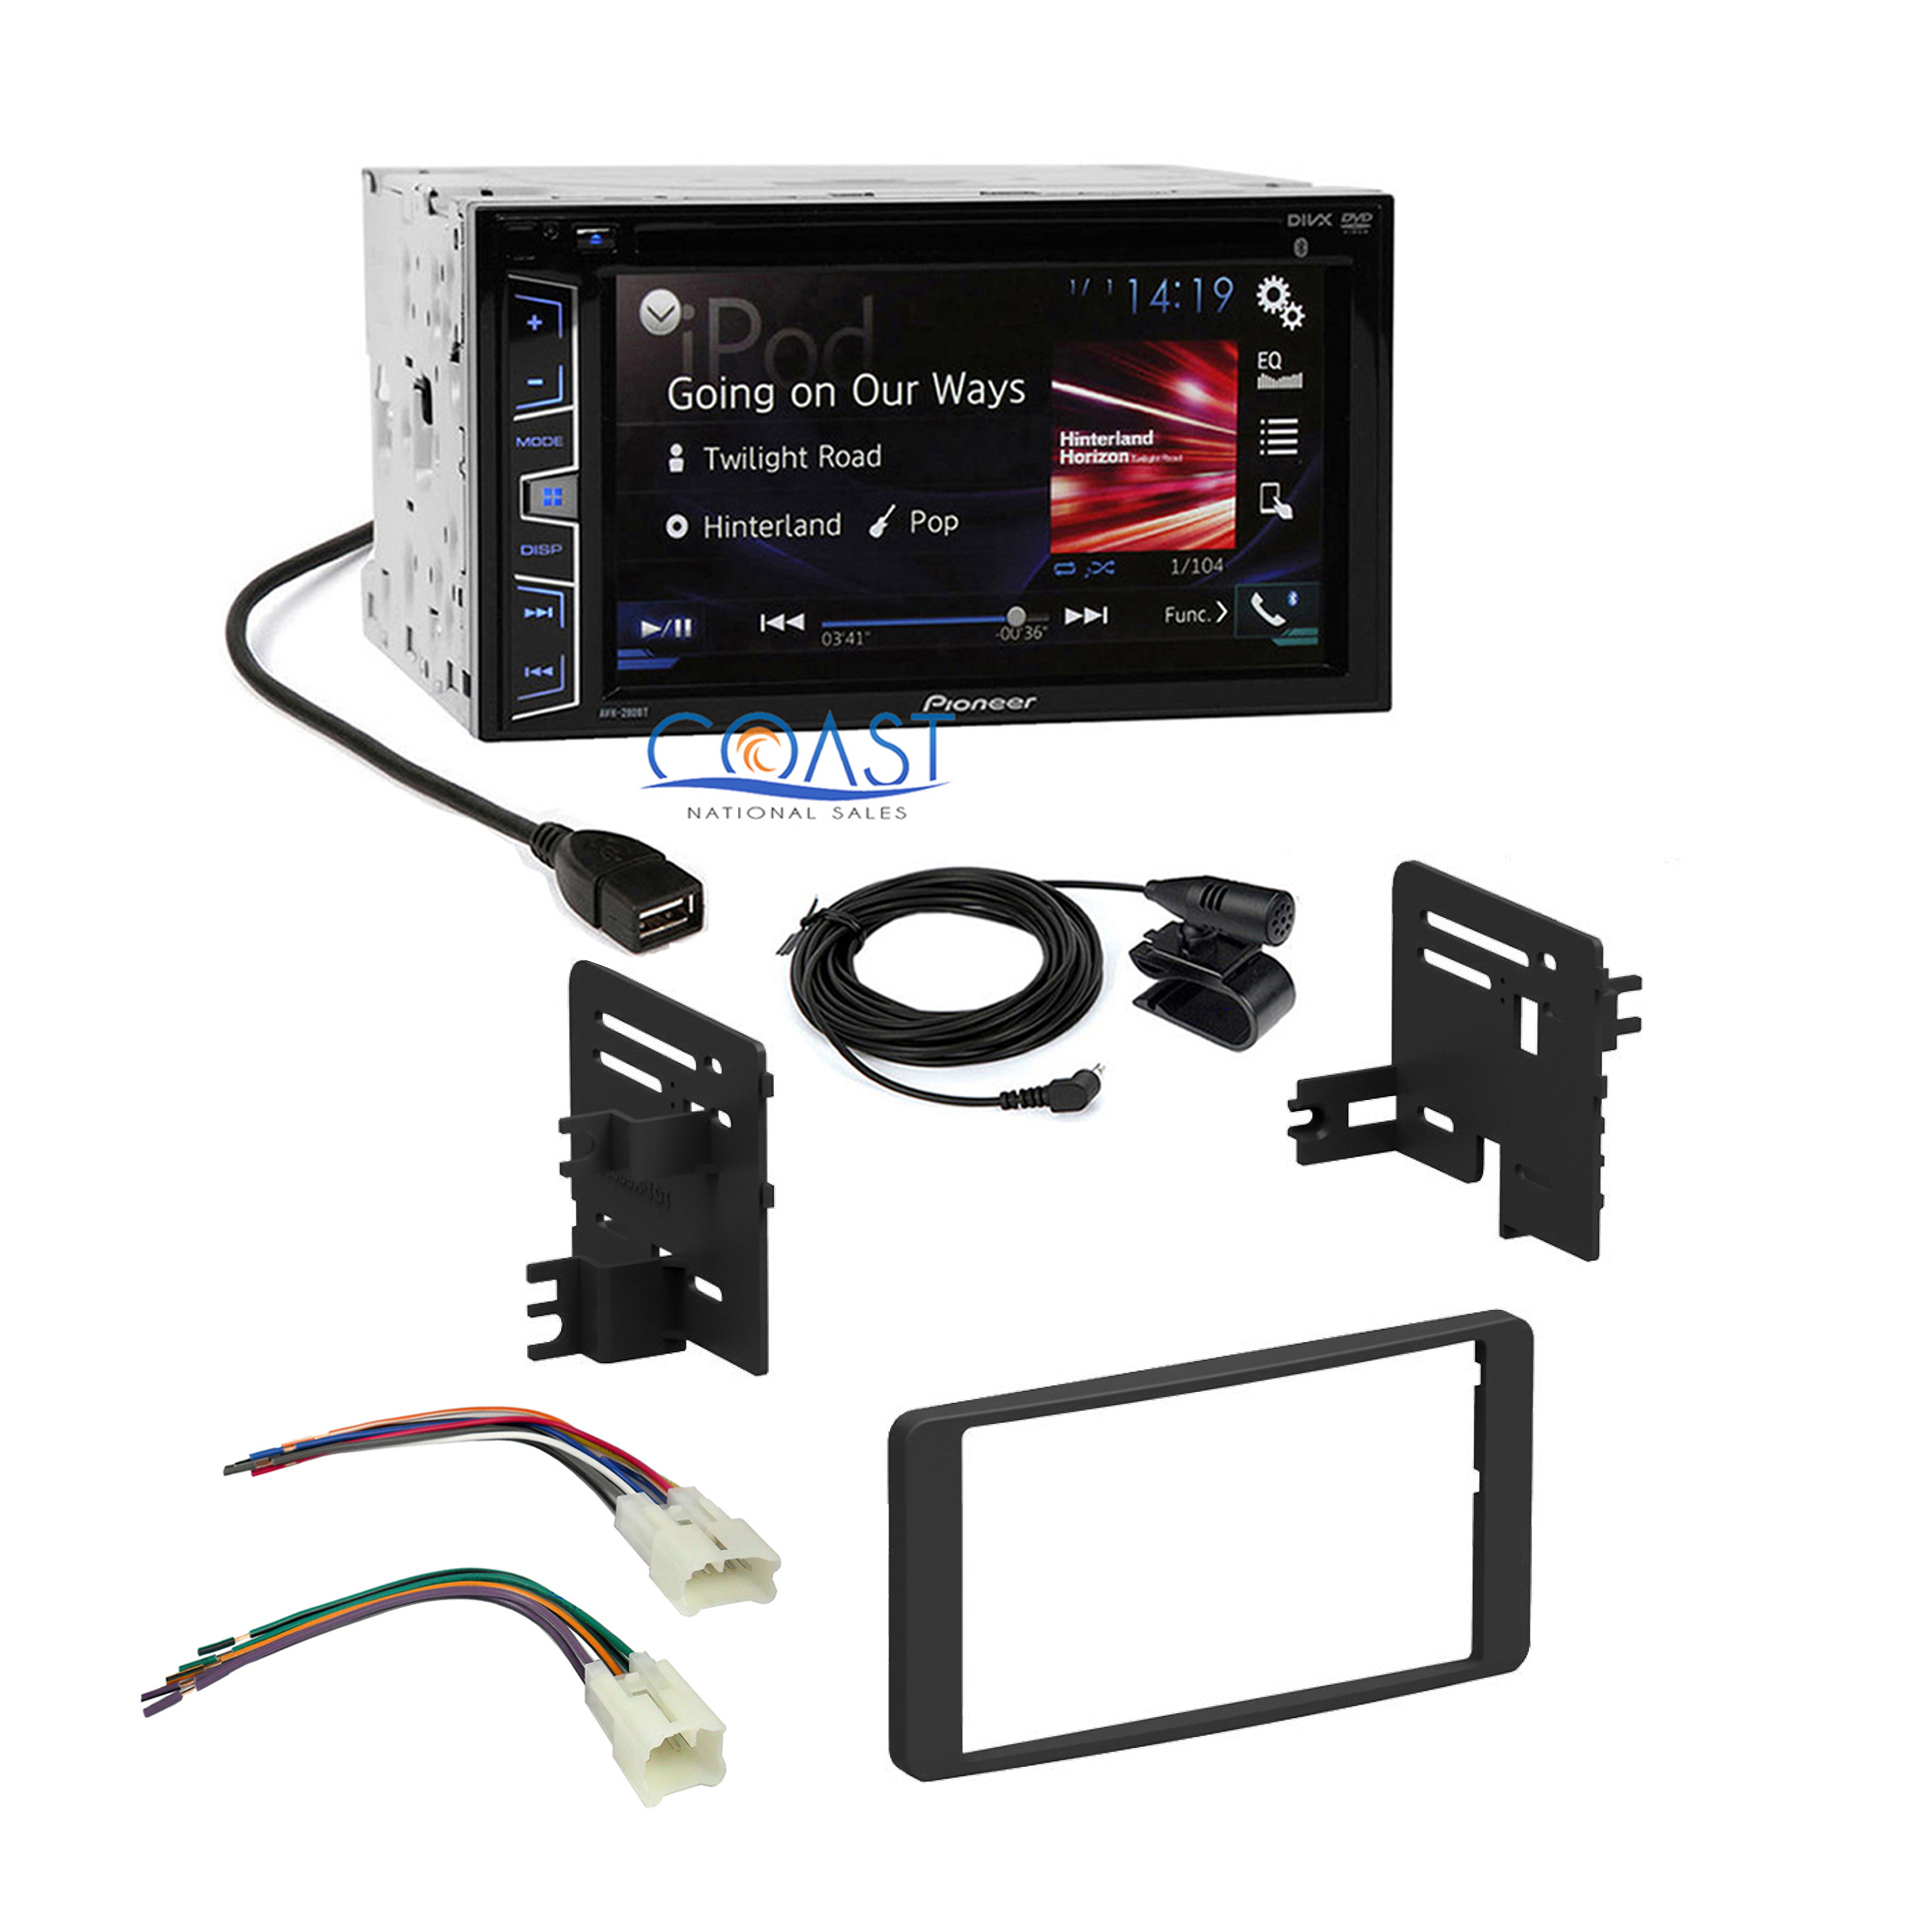 details about pioneer 2016 radio stereo dash kit harness for 2003-2007 toyota  tundra sequoia